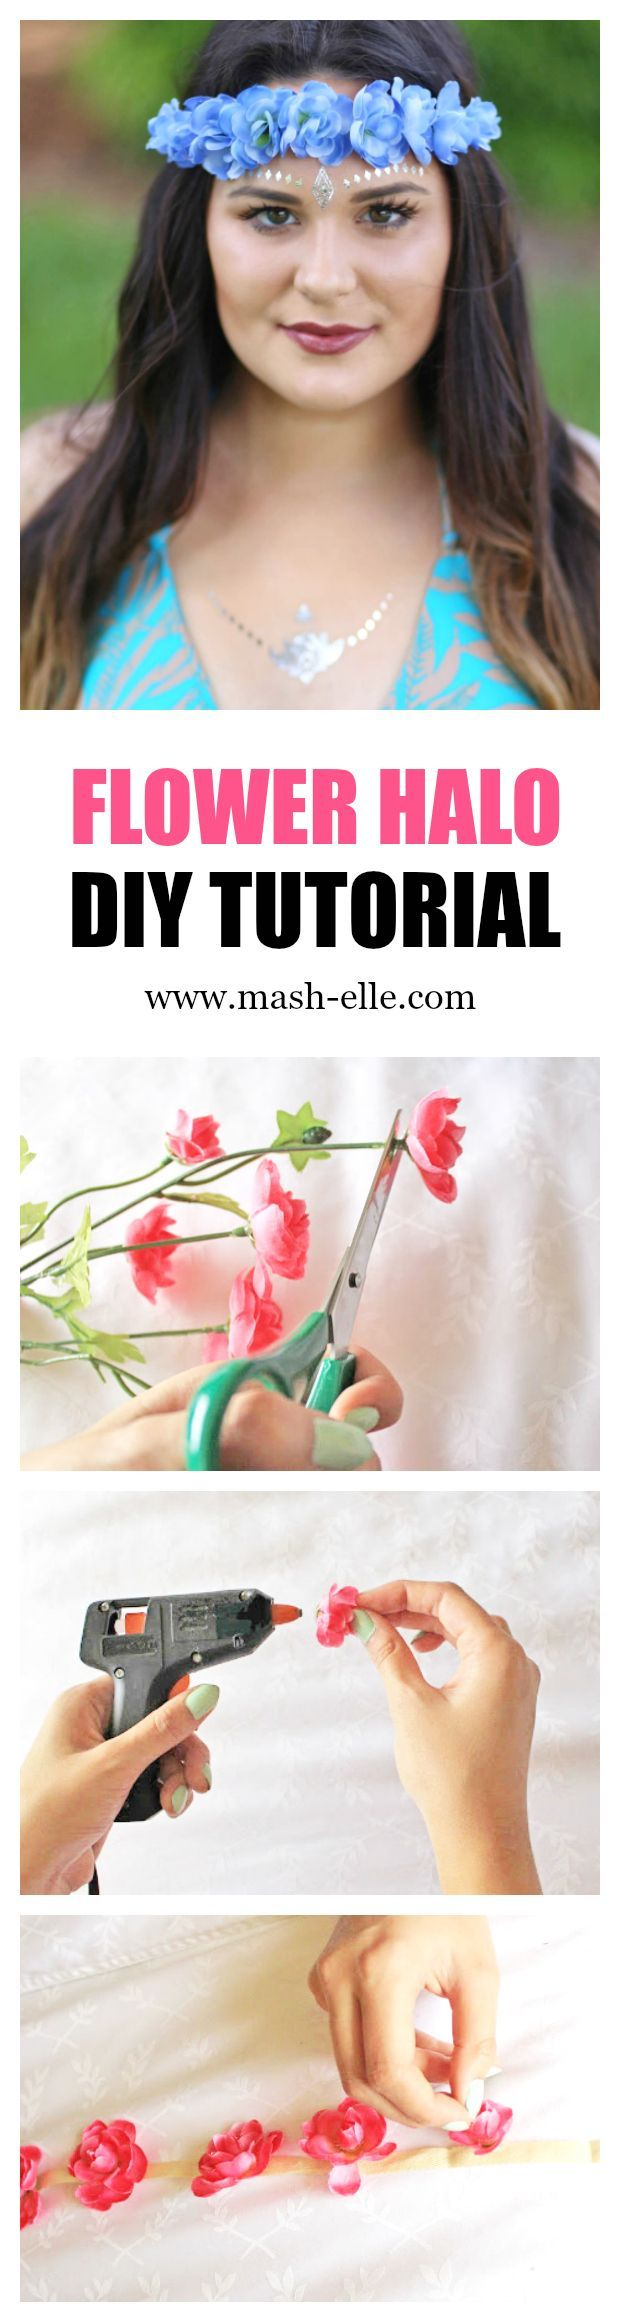 The EASIEST flower halo tutorial on the Internet! | Fashion blogger Mash Elle shows how quick and easy it is to make a flower crown for music festivals such as Coachella, Bonnaroo and more! Find festival fashion tips and ideas here!